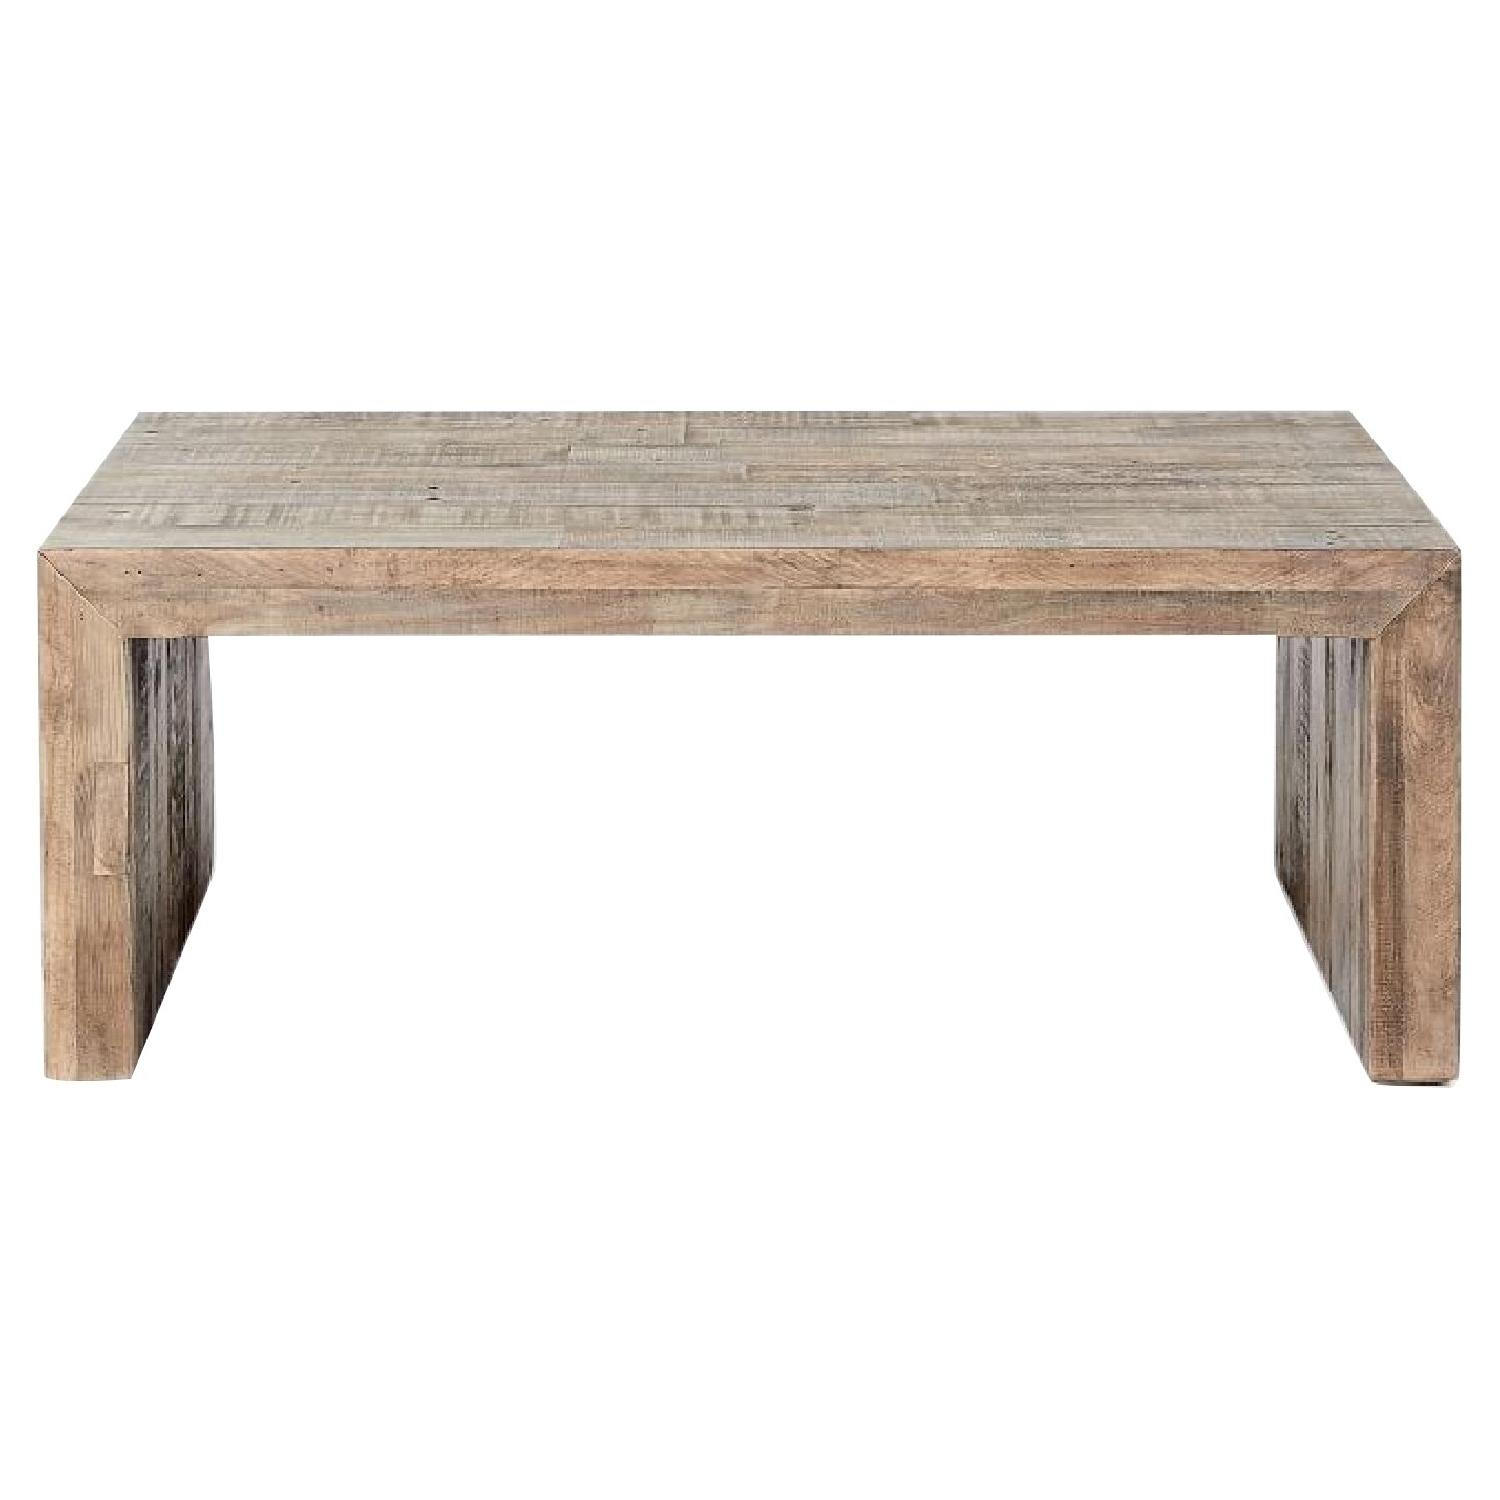 West Elm Emmerson Coffee Table AptDeco - West elm emmerson coffee table